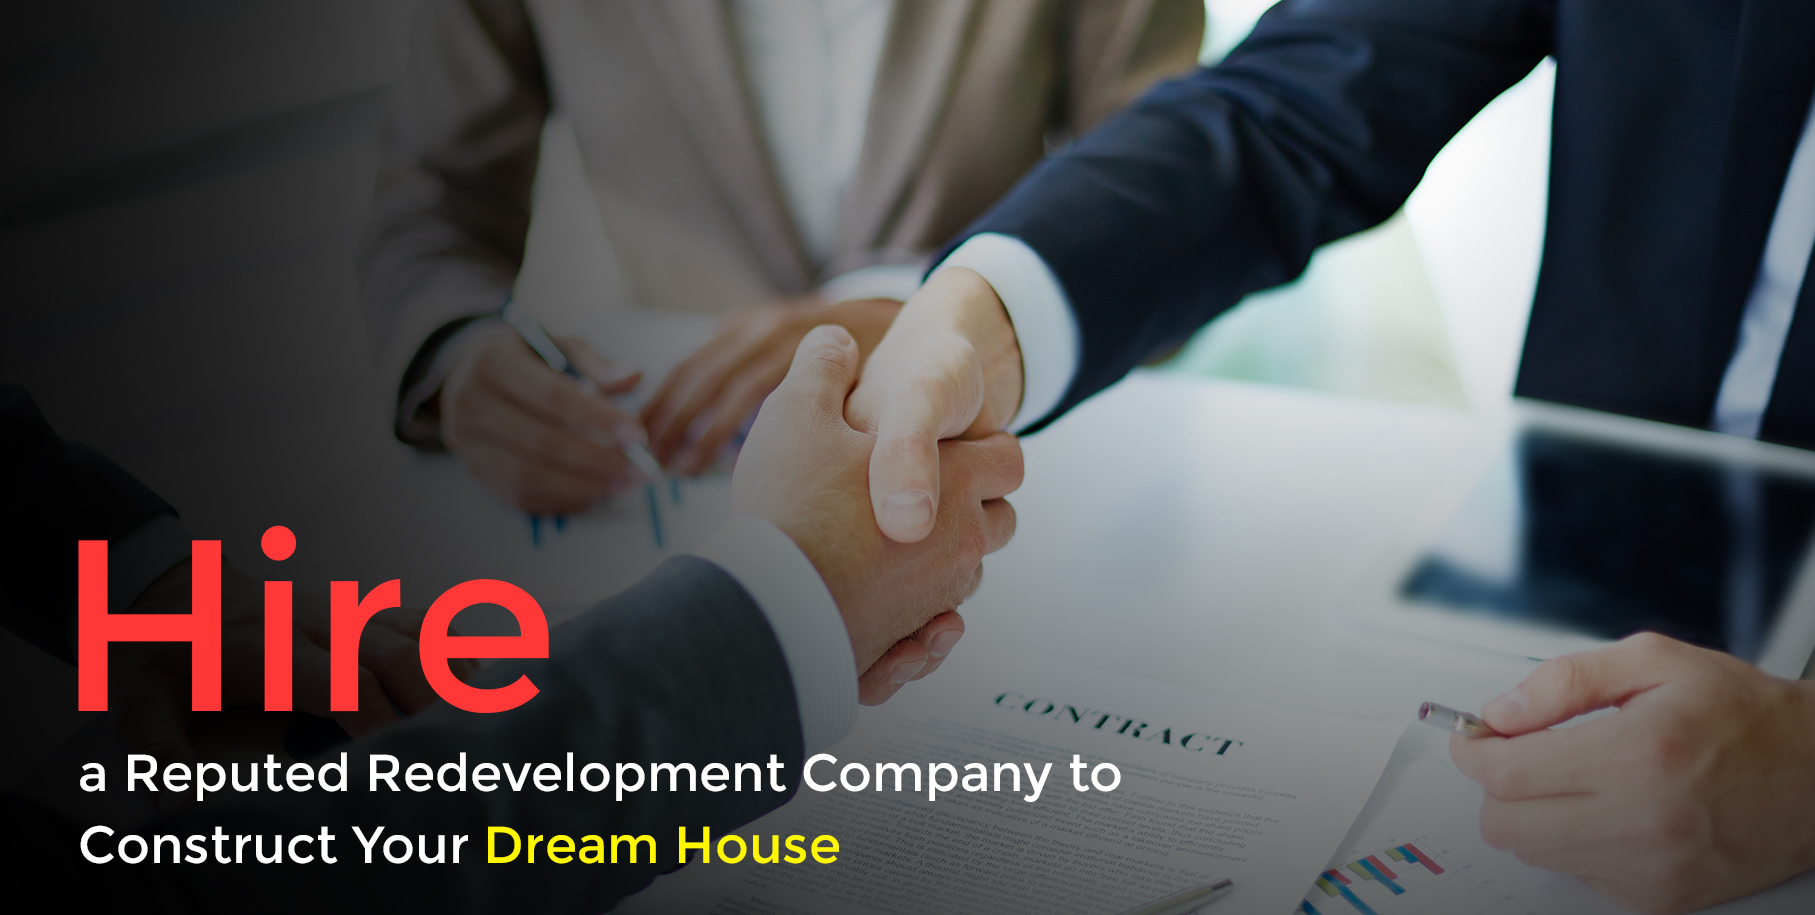 Hire a Reputed Redevelopment Company to Construct Your Dream House